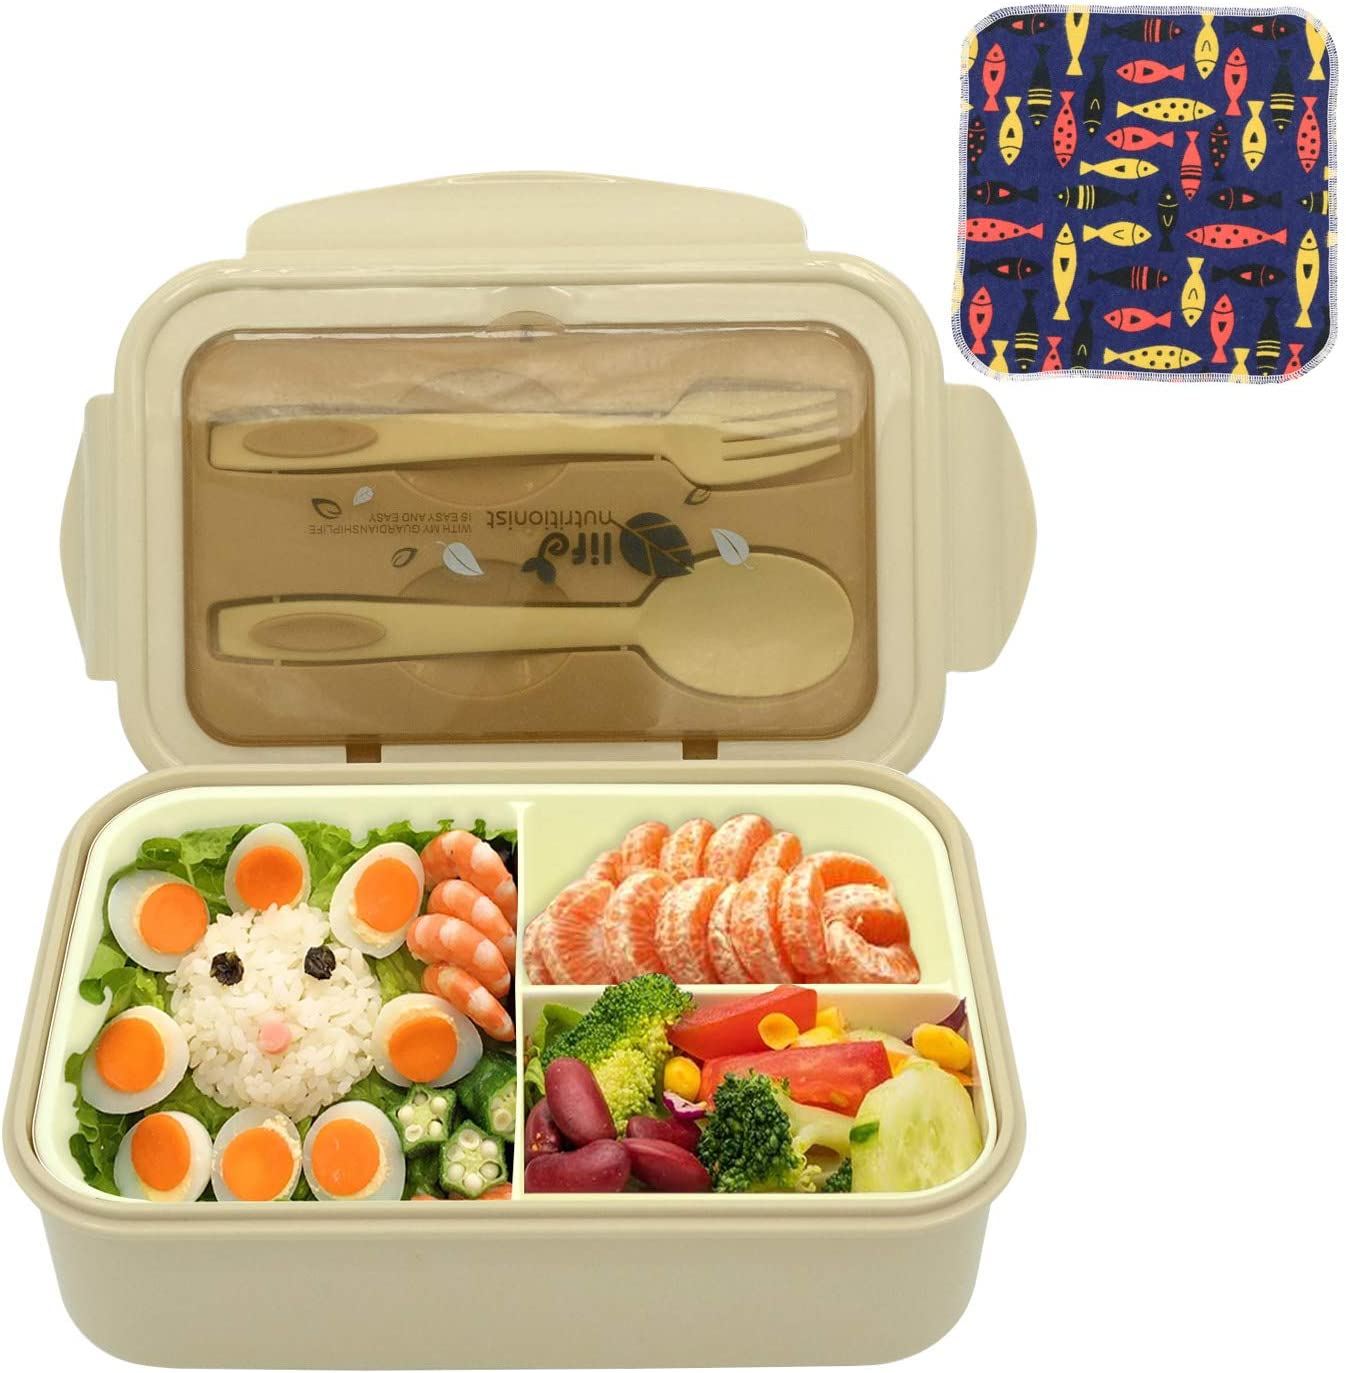 Bento Boxes Leakproof Food Containers for Kids and Adults, 1400ML BPA-Free and Food-Safe Cute Meal Prep Lunch Box with Lunch Bag, Spoon & Fork 3 Compartment, Microwave Freezer Dishwasher Safe (Beige)